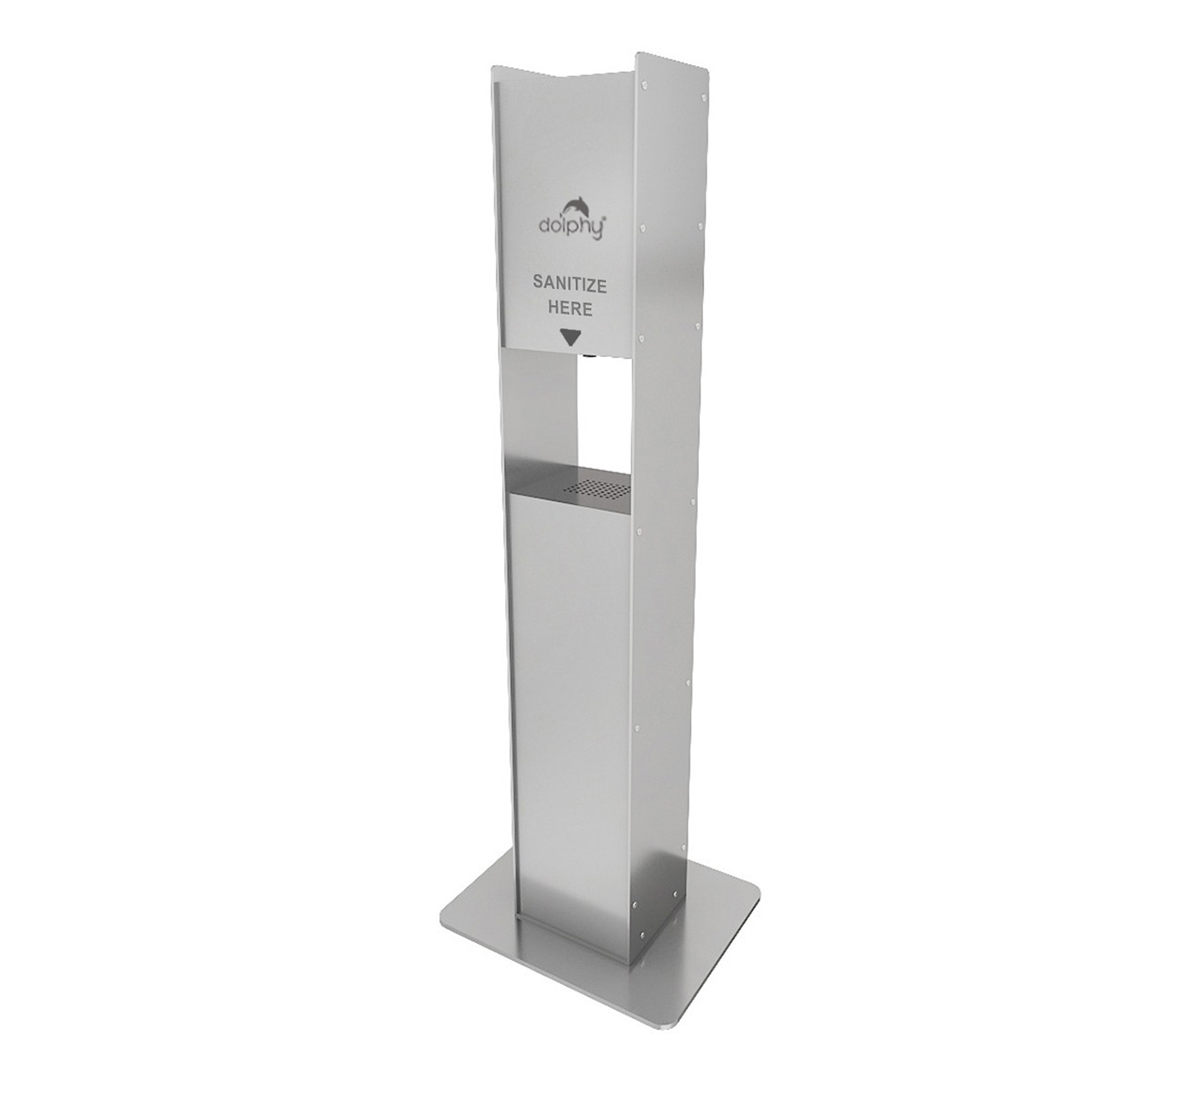 SS 304 Free Standing Cabinet for Automatic Sanitizer Dispenser